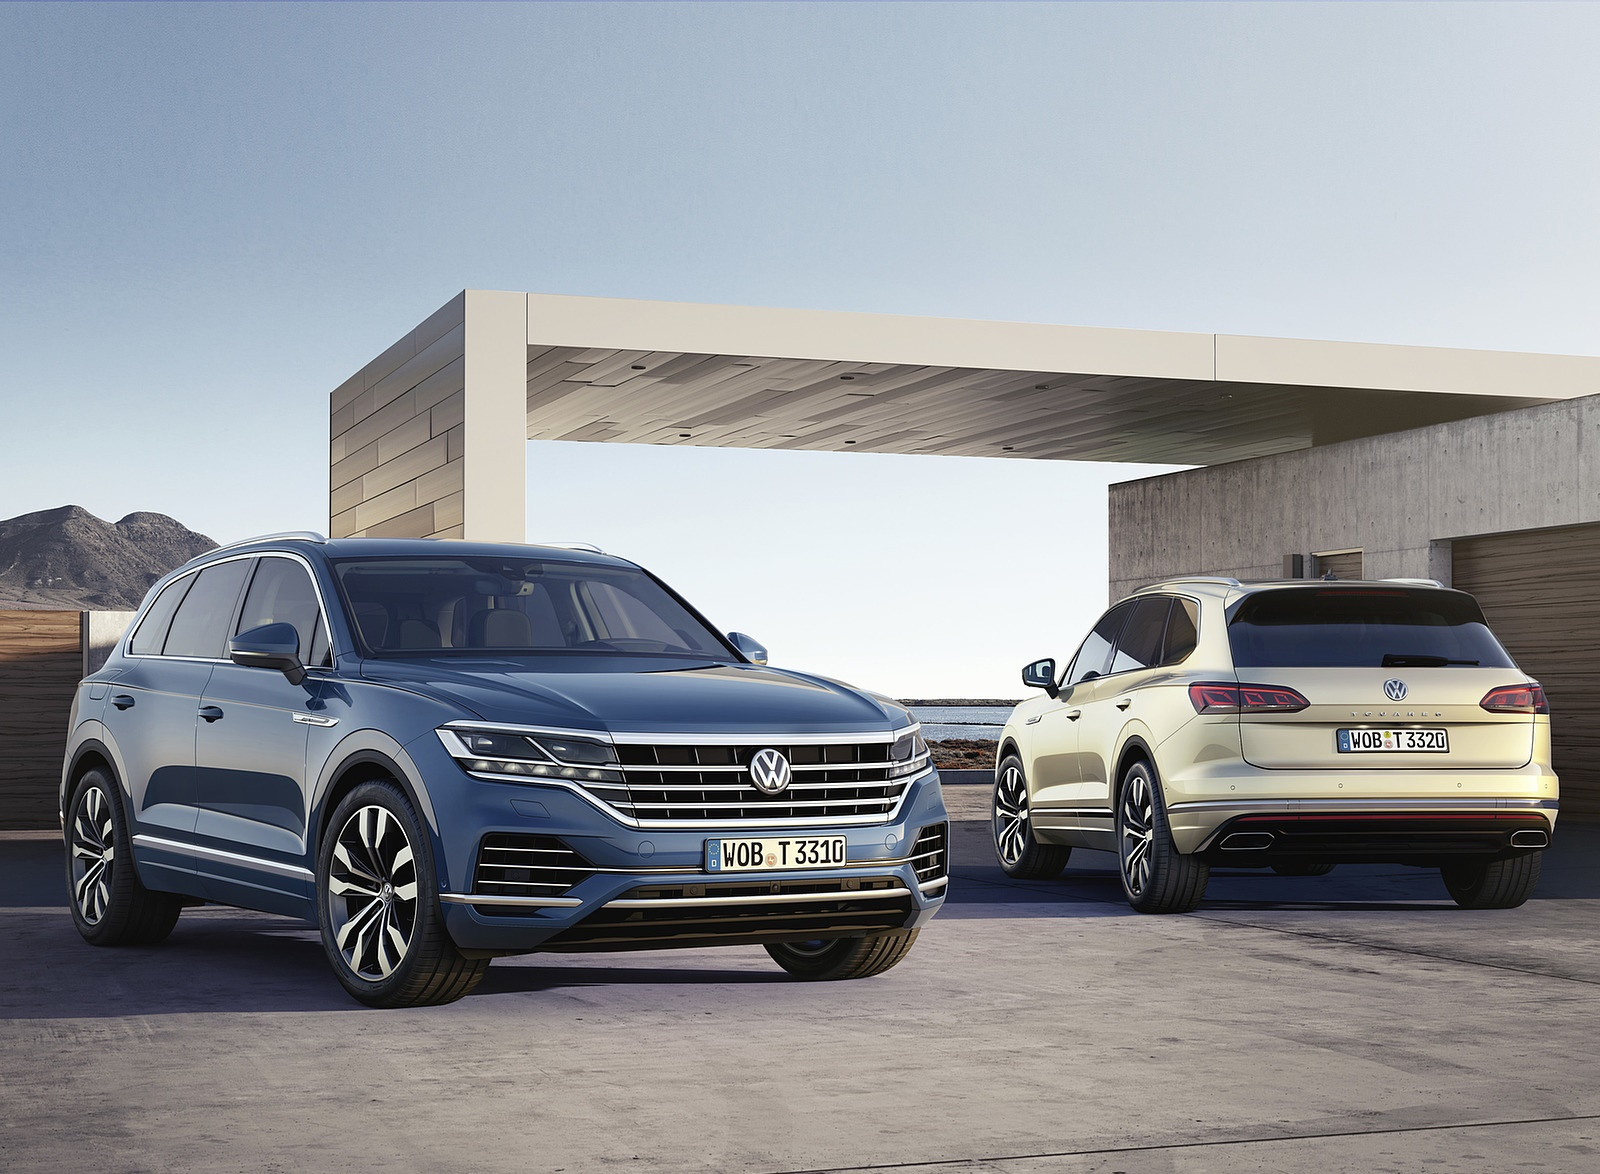 2019 Volkswagen Touareg Exterior Detail Wallpapers (9)